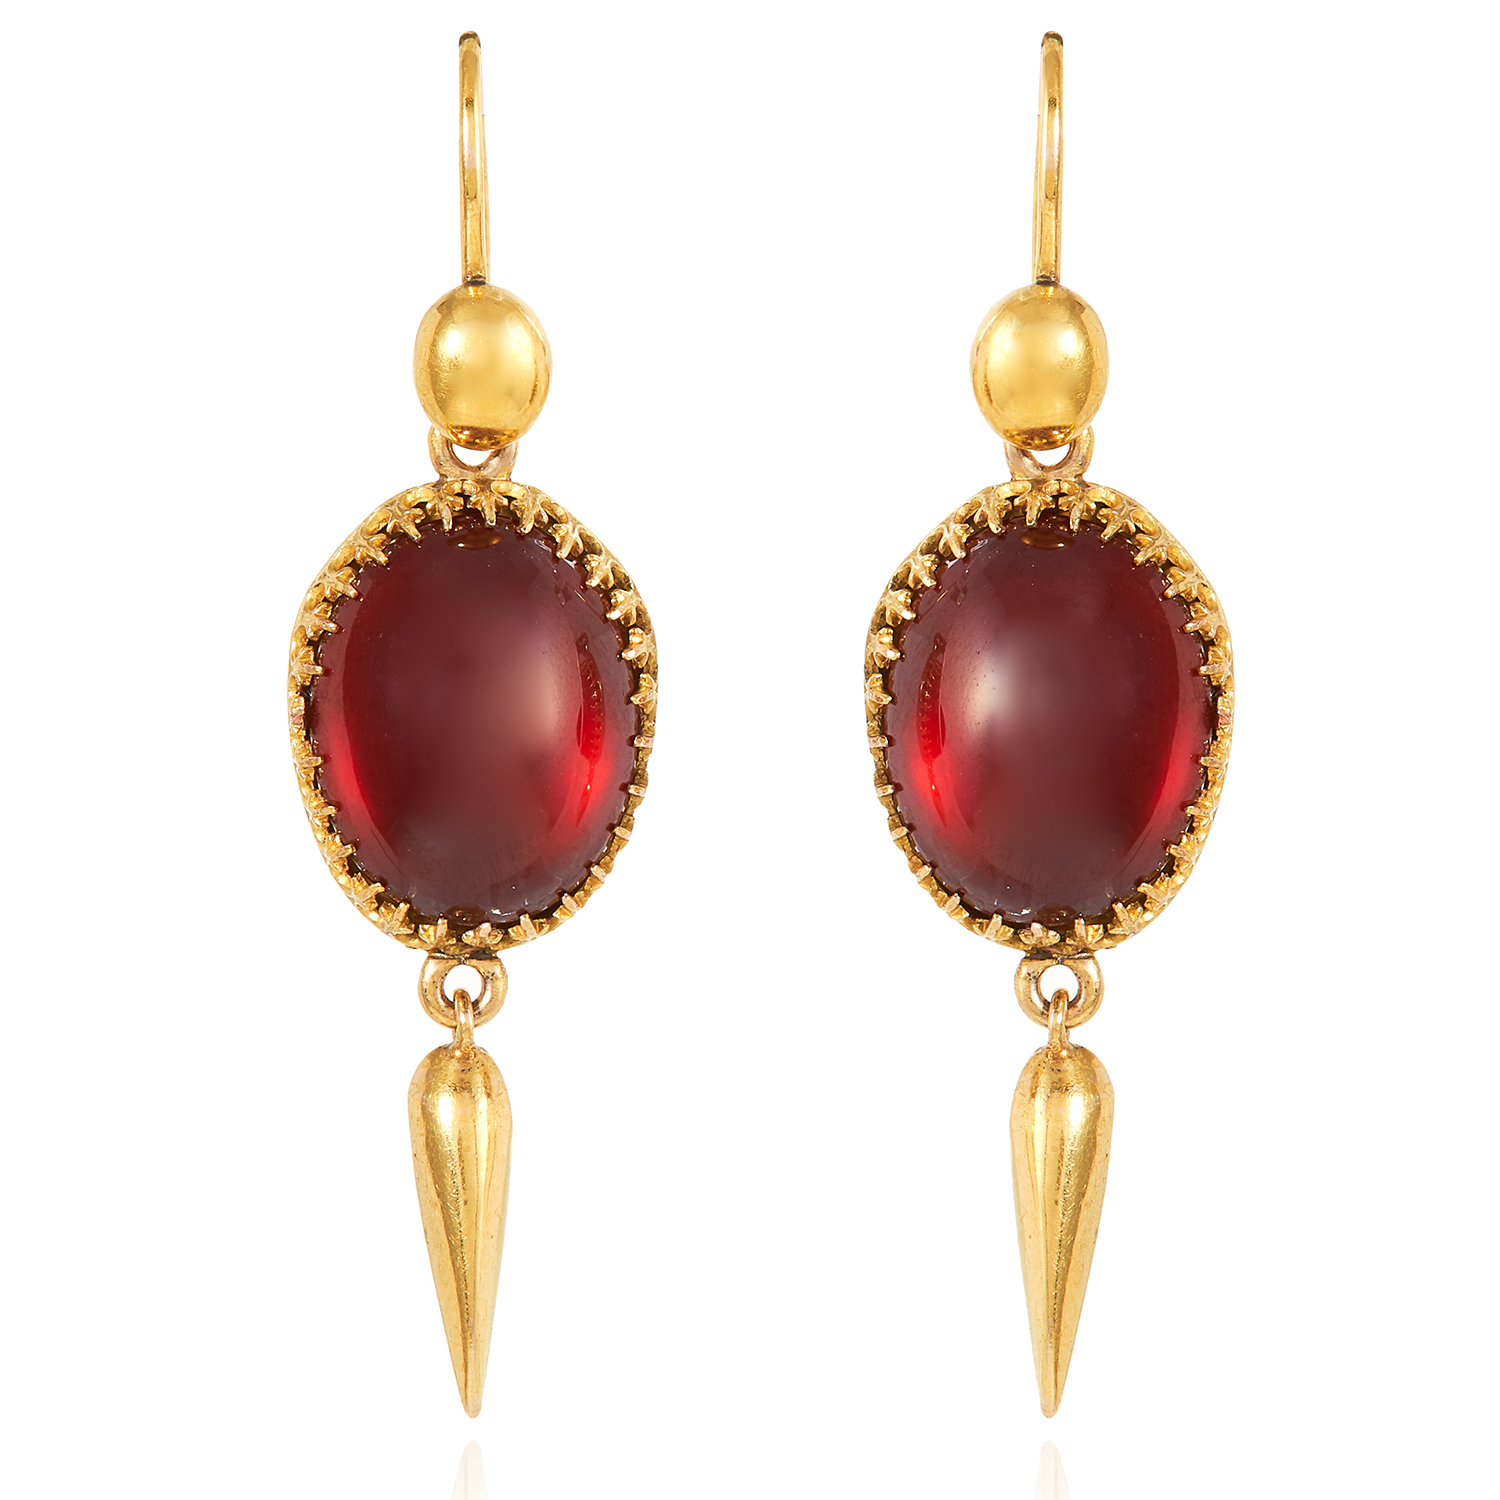 Los 2 - A PAIR OF GARNET DROP EARRINGS, 19TH CENTURY in high carat yellow gold, Etruscan revival, set with